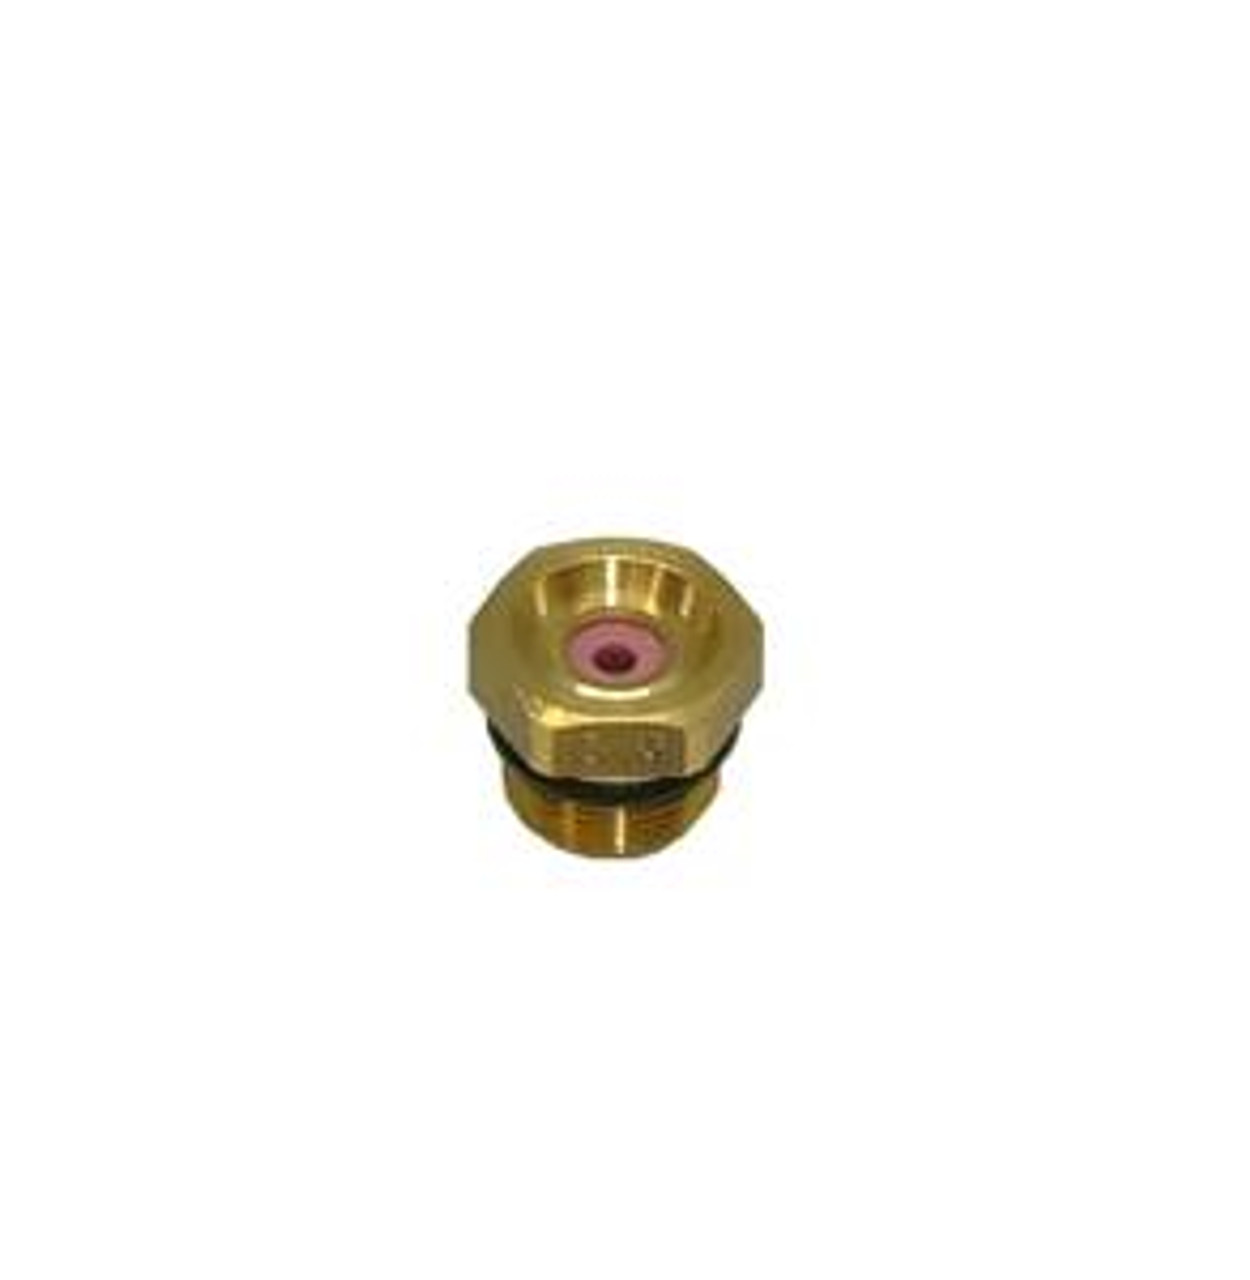 Nozzle for Turbo 400 gun - 3.0mm ceramic